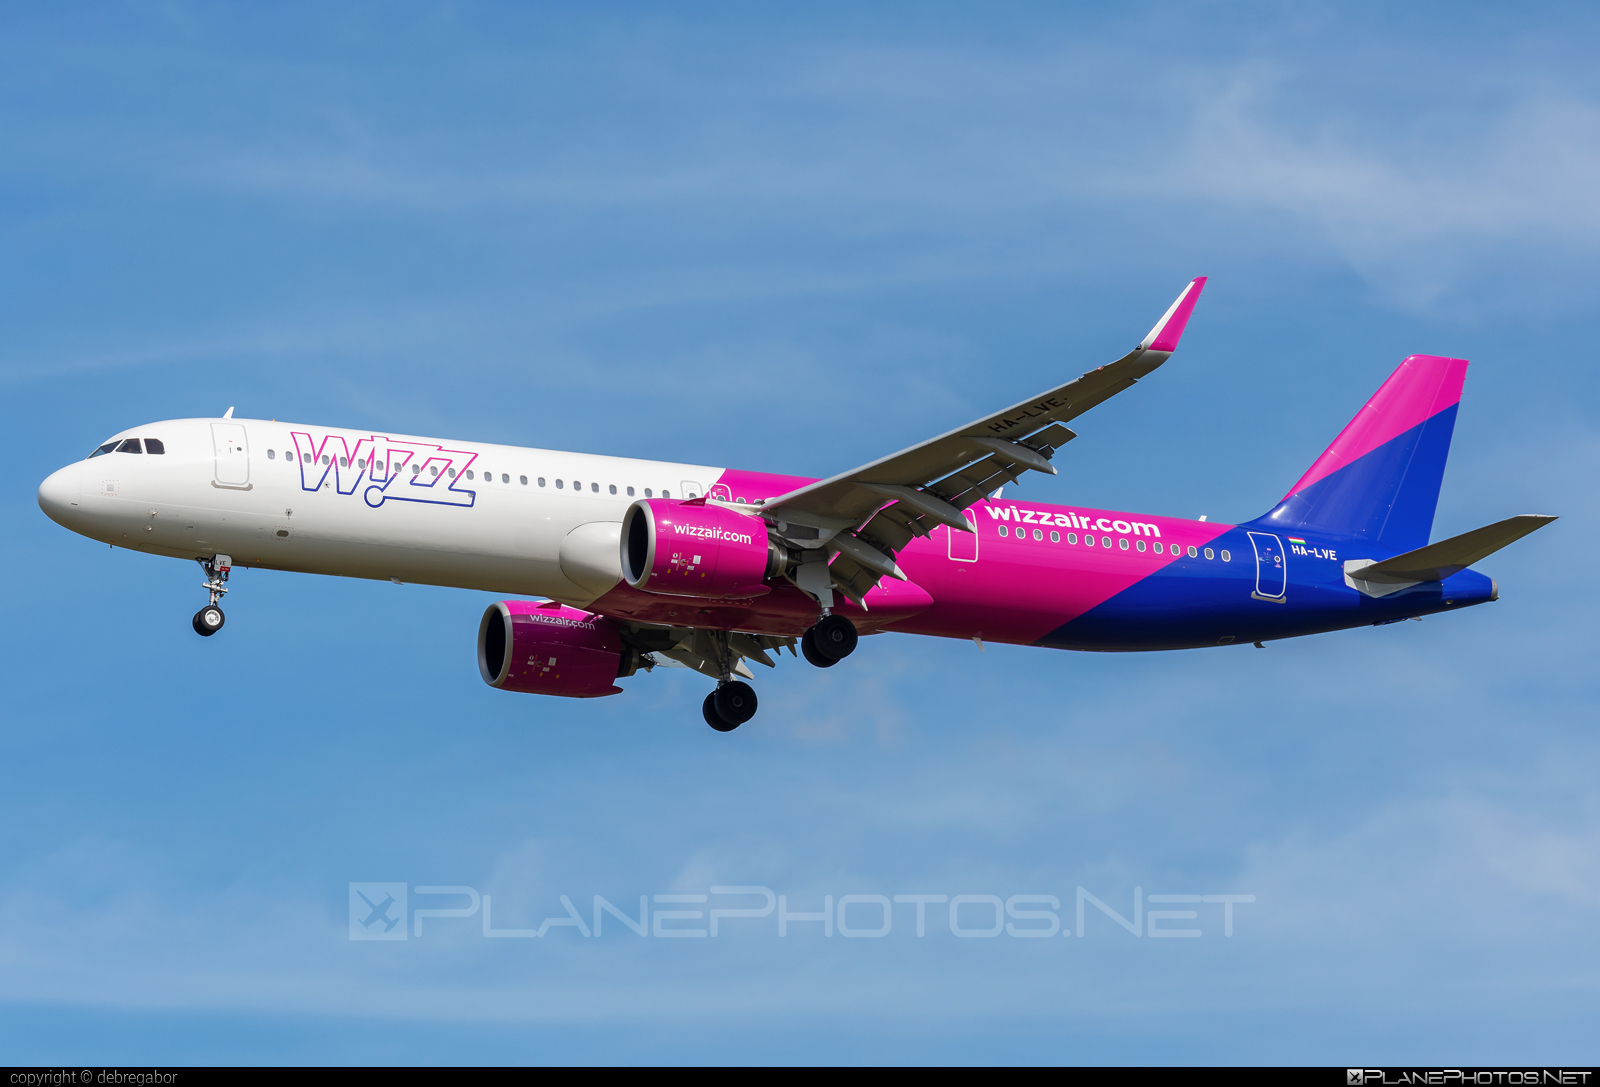 Airbus A321-271NX - HA-LVE operated by Wizz Air #a320family #a321 #a321neo #airbus #airbus321 #airbus321lr #wizz #wizzair